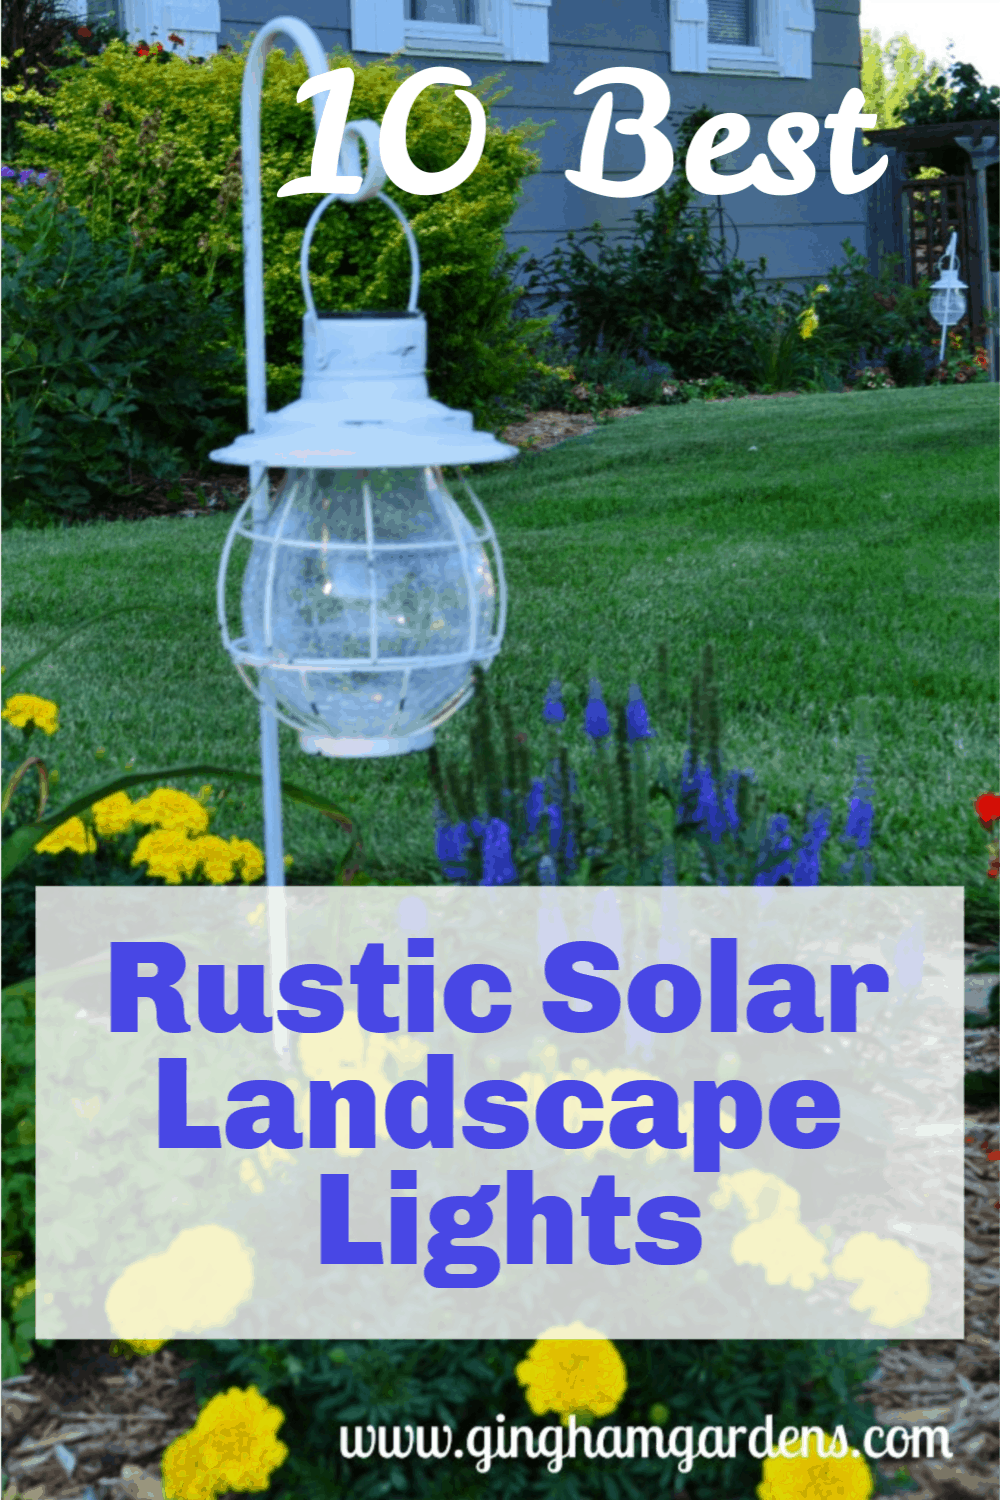 Image of a landscape light in a flower garden with text overlay Rustic Solar Landscape Lights